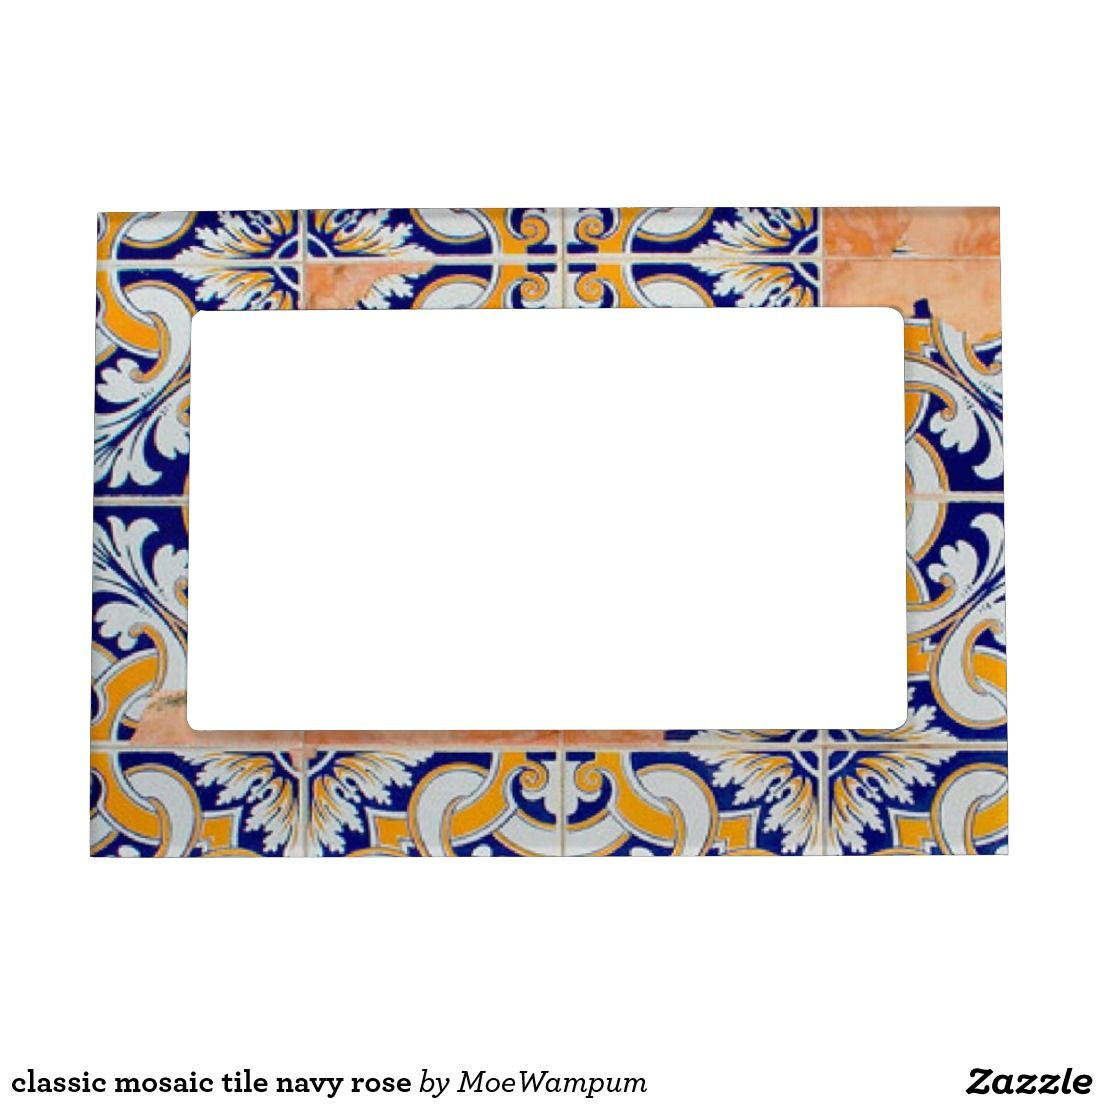 Classic mosaic tile navy rose magnetic photo frame | Magnetic photo ...